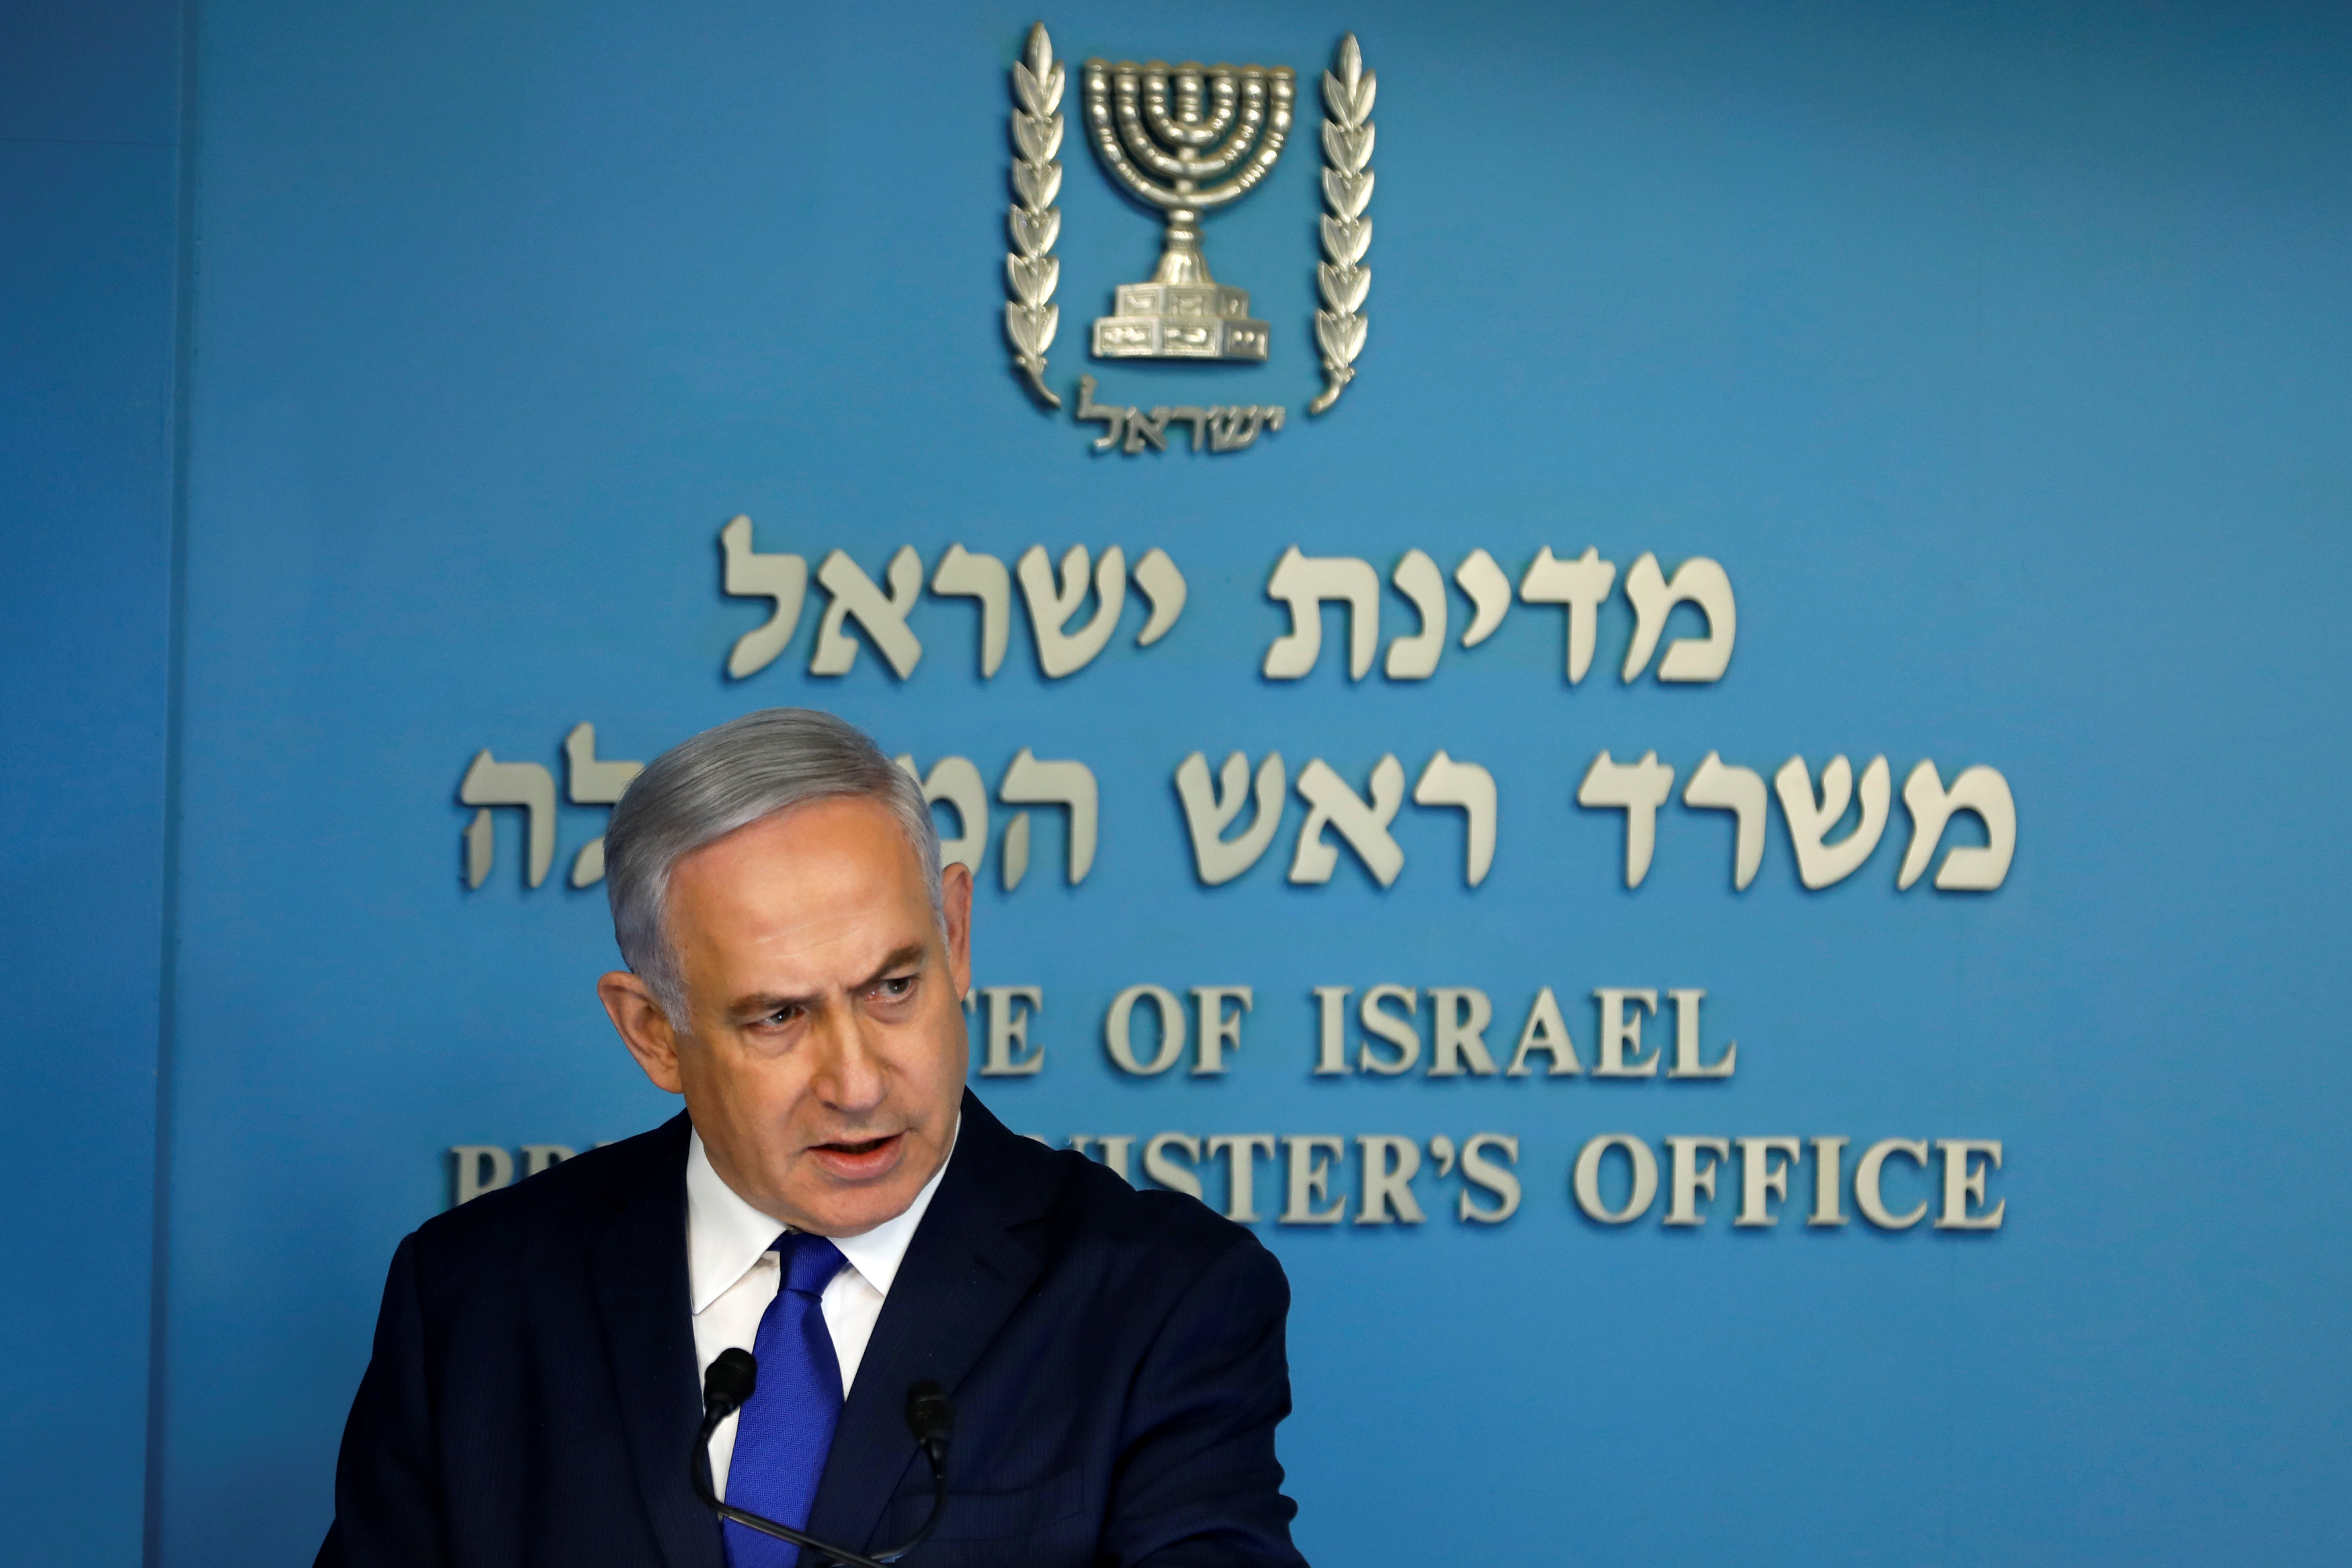 Israeli Prime Minister Benjamin Netanyahu speaks during a news conference at the Prime Minister's office in Jerusalem April 2, 2018. REUTERS/Ronen Zvulun